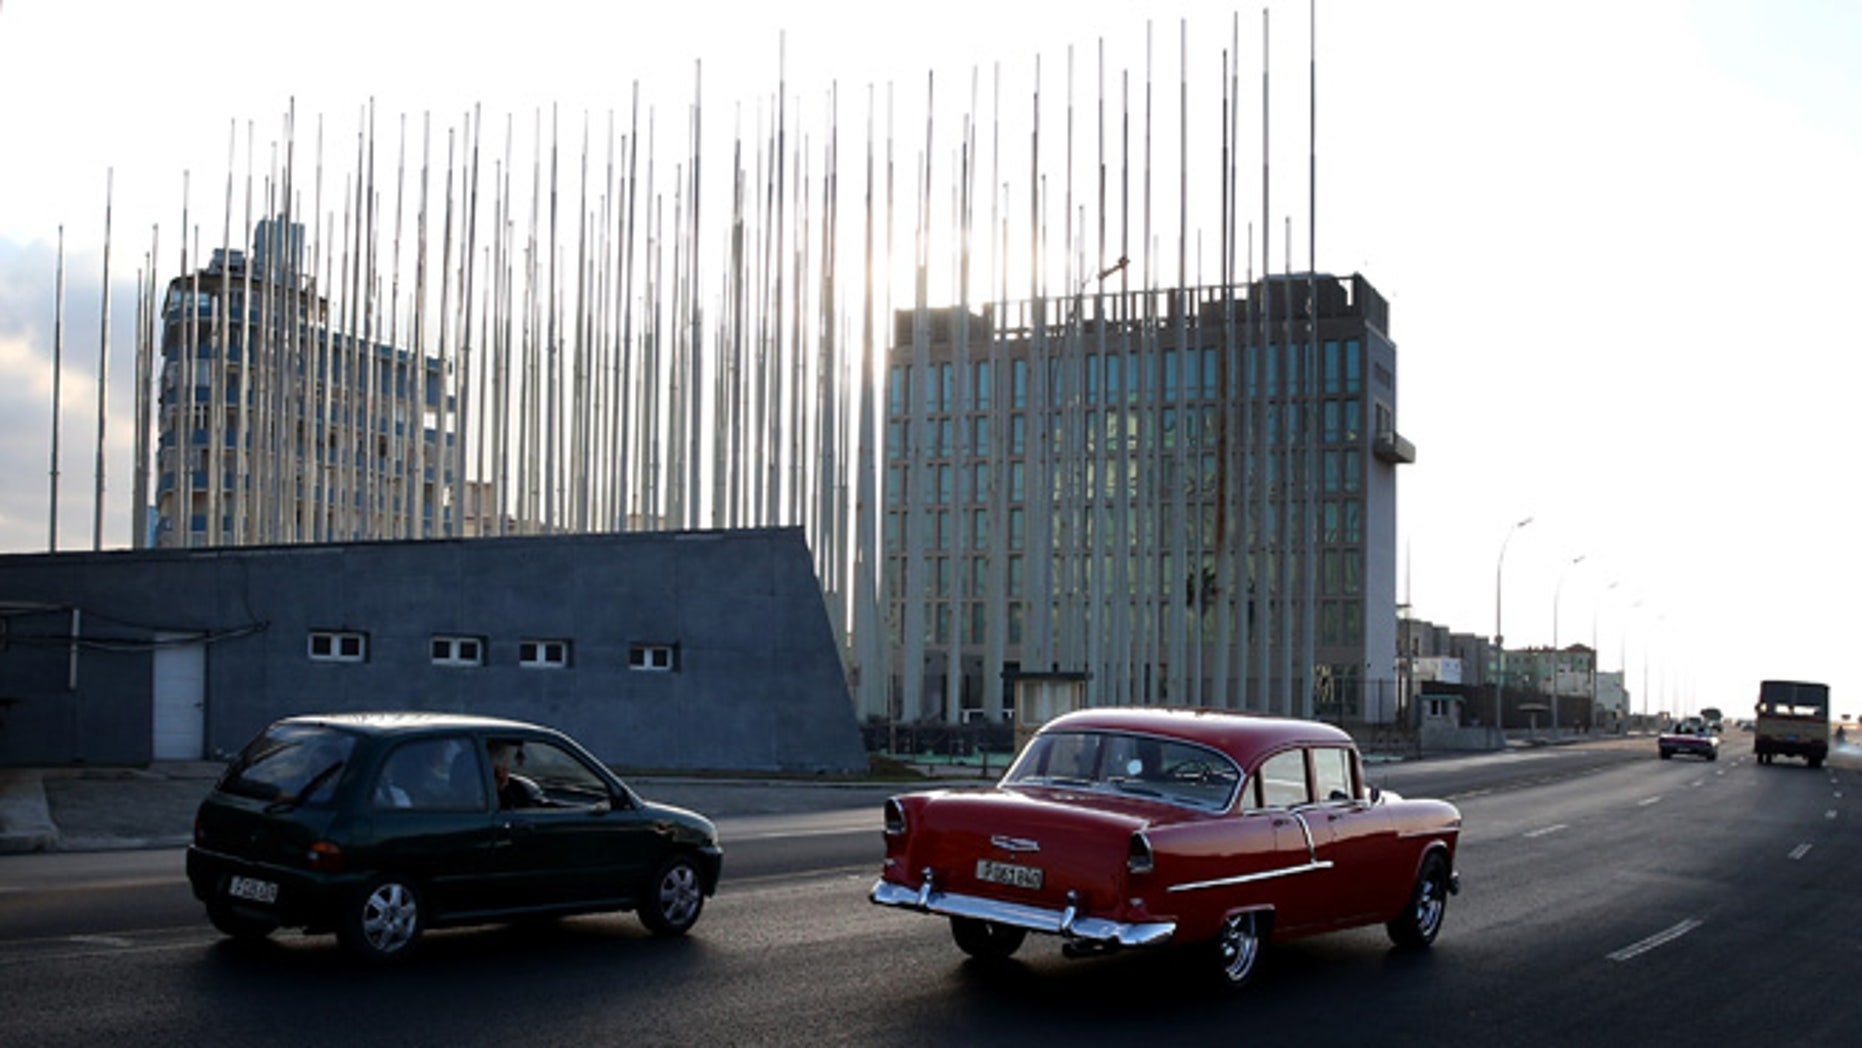 HAVANA, CUBA - FEBRUARY 25: Flag poles are seen in front of the United States Interests Section as Cuba and the U.S. governments prepare for the second round of discussions to restore diplomatic relations on February 25, 2015 in Havana, Cuba. Among the discussions scheduled for Friday will be converting the Interests Section back to a U.S. Embassy. (Photo by Joe Raedle/Getty Images)